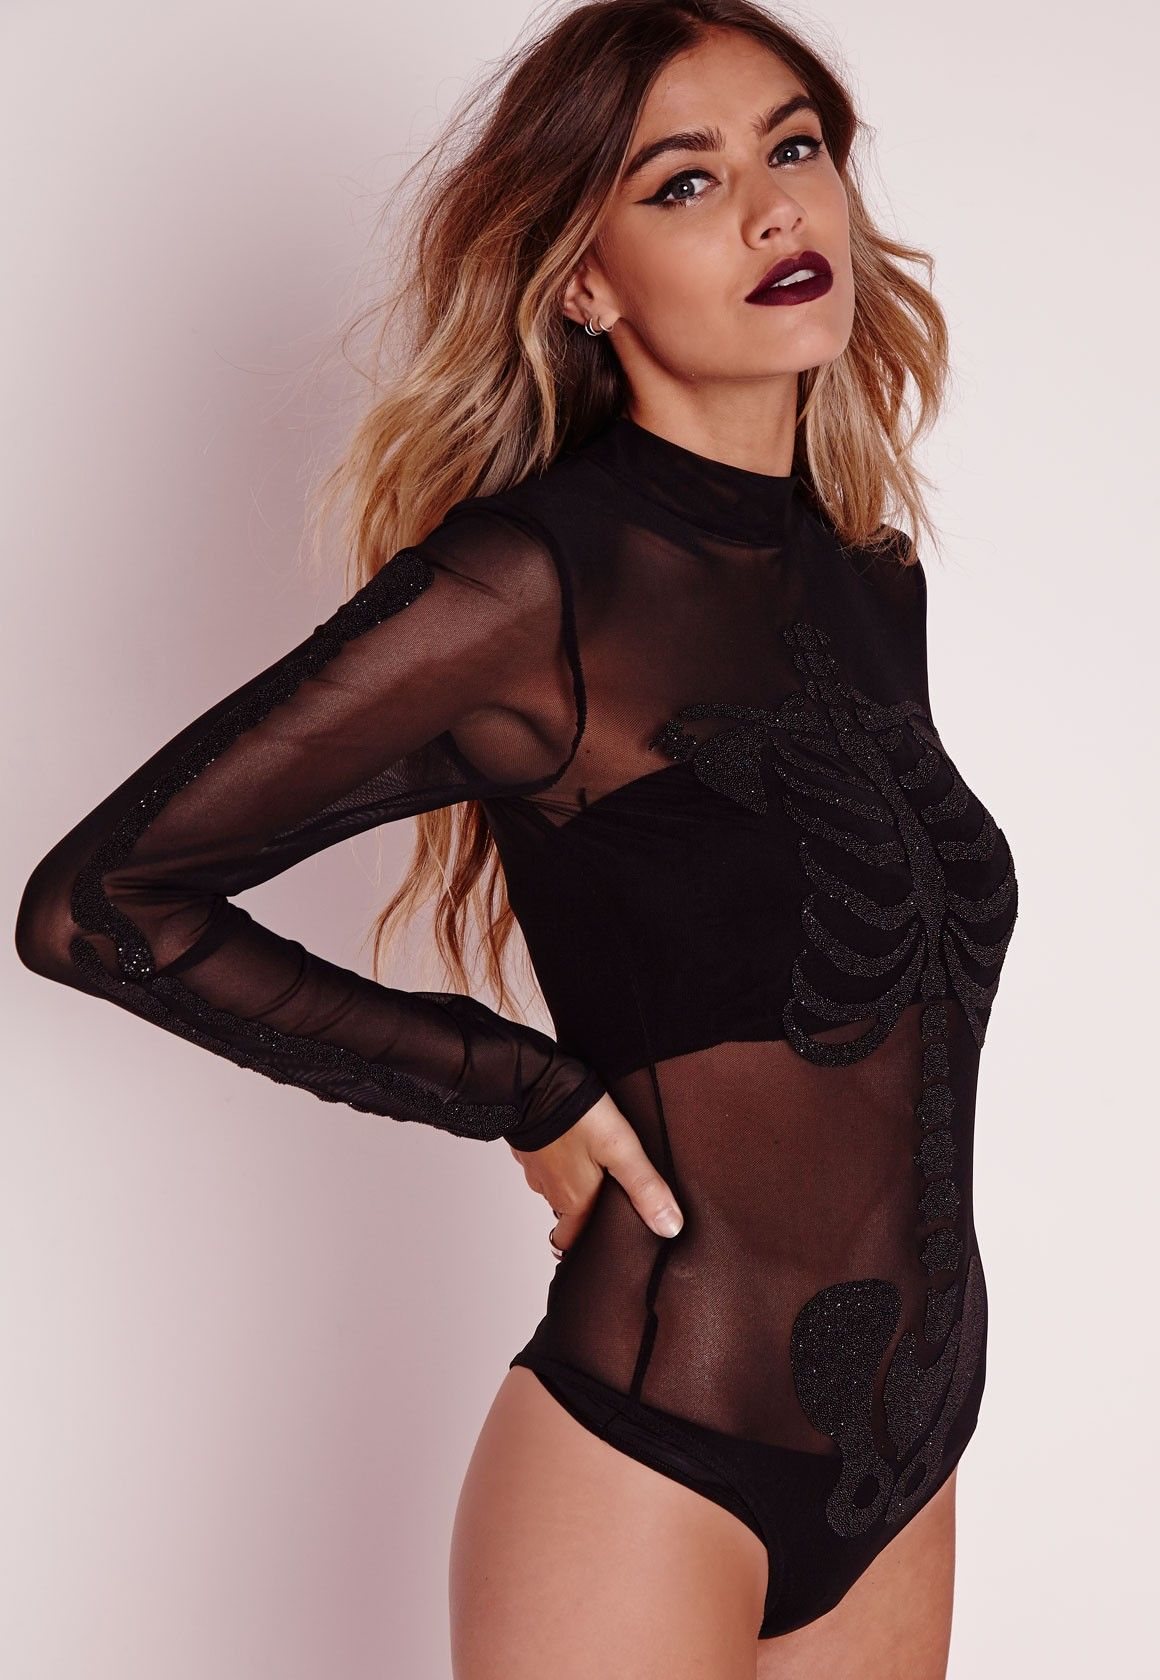 c934cedf29 Missguided - Beaded Skeleton Mesh Bodysuit Black Pinterest  laurenNicole619